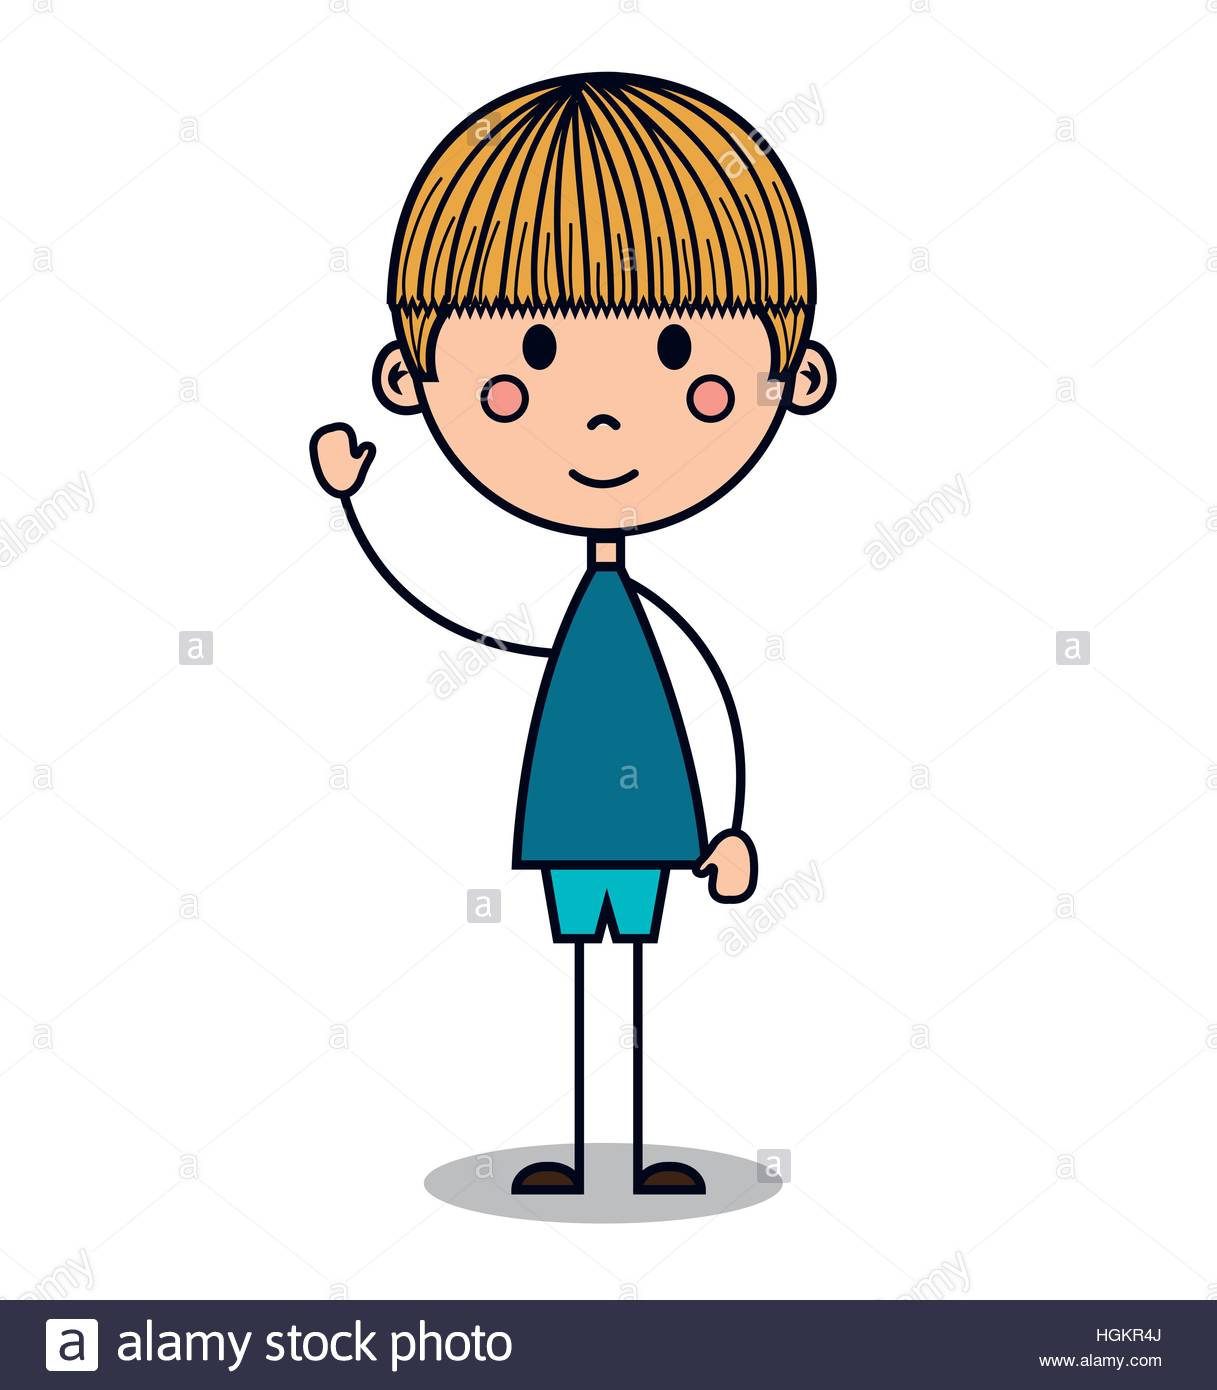 1217x1390 Cute Little Boy Drawing Vector Illustration Design Stock Vector